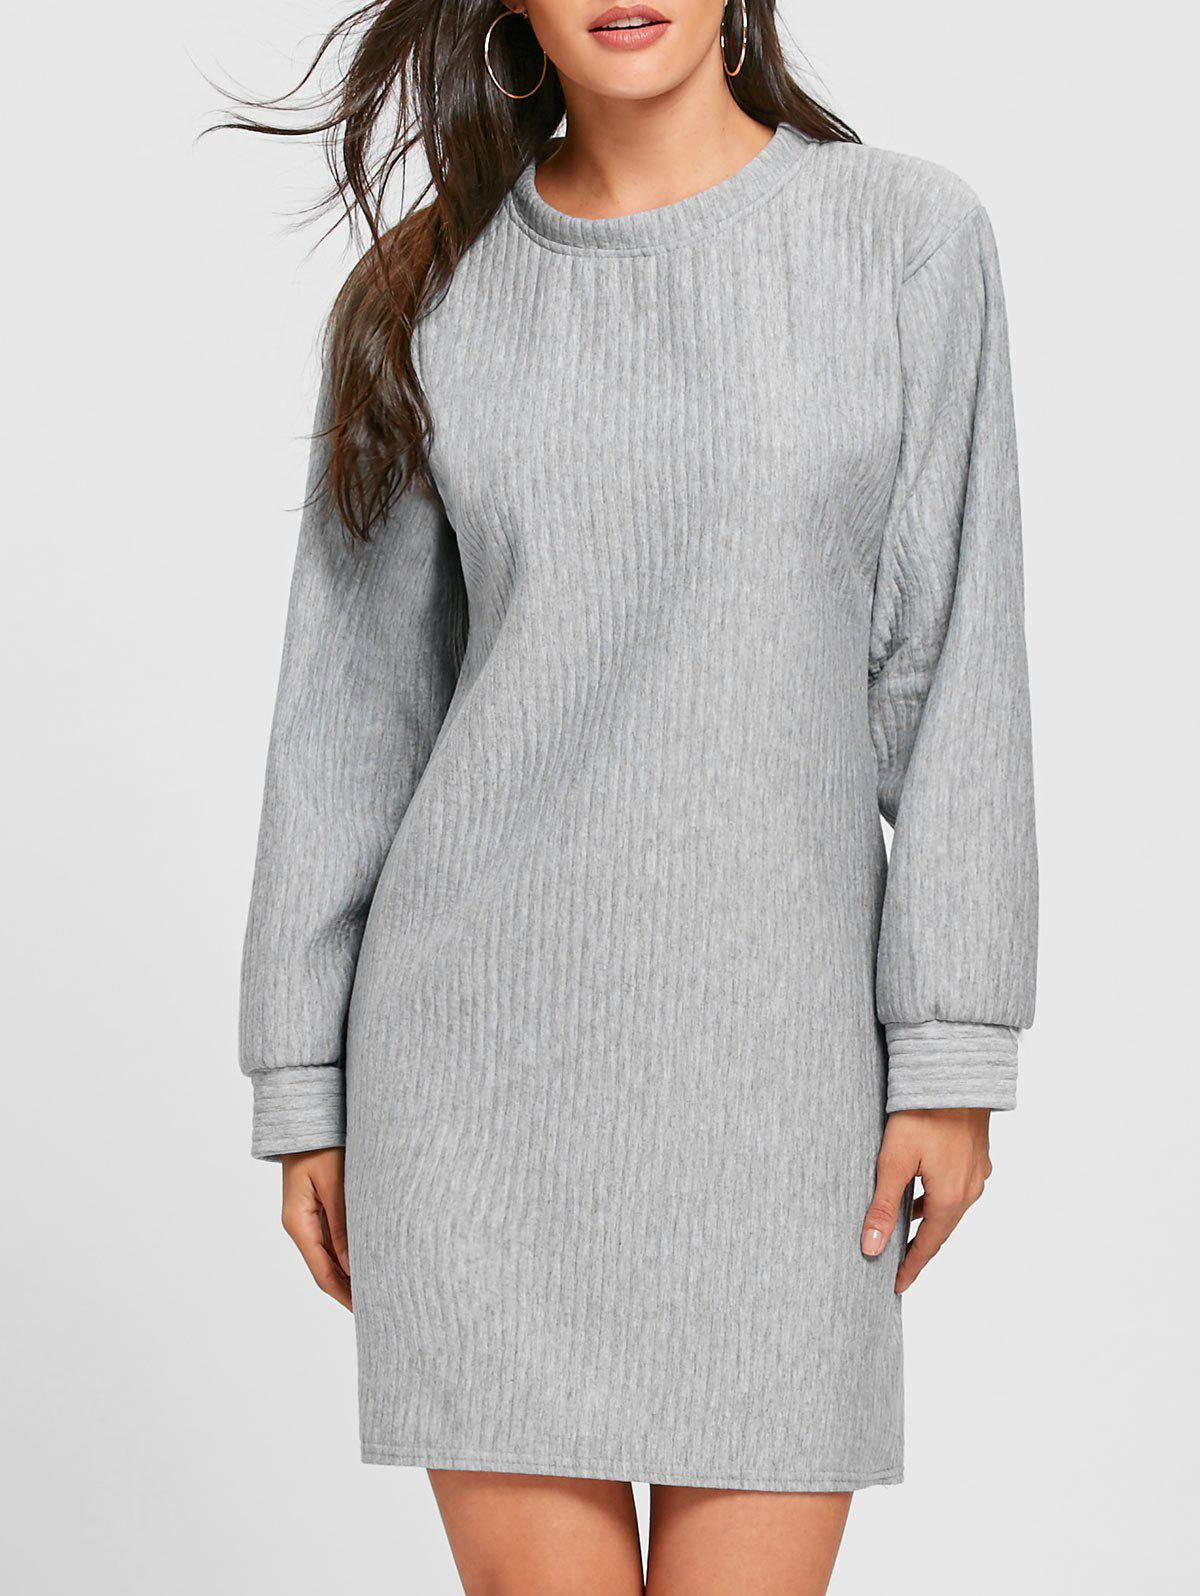 New Ribbed Mini Sweatshirt Dress